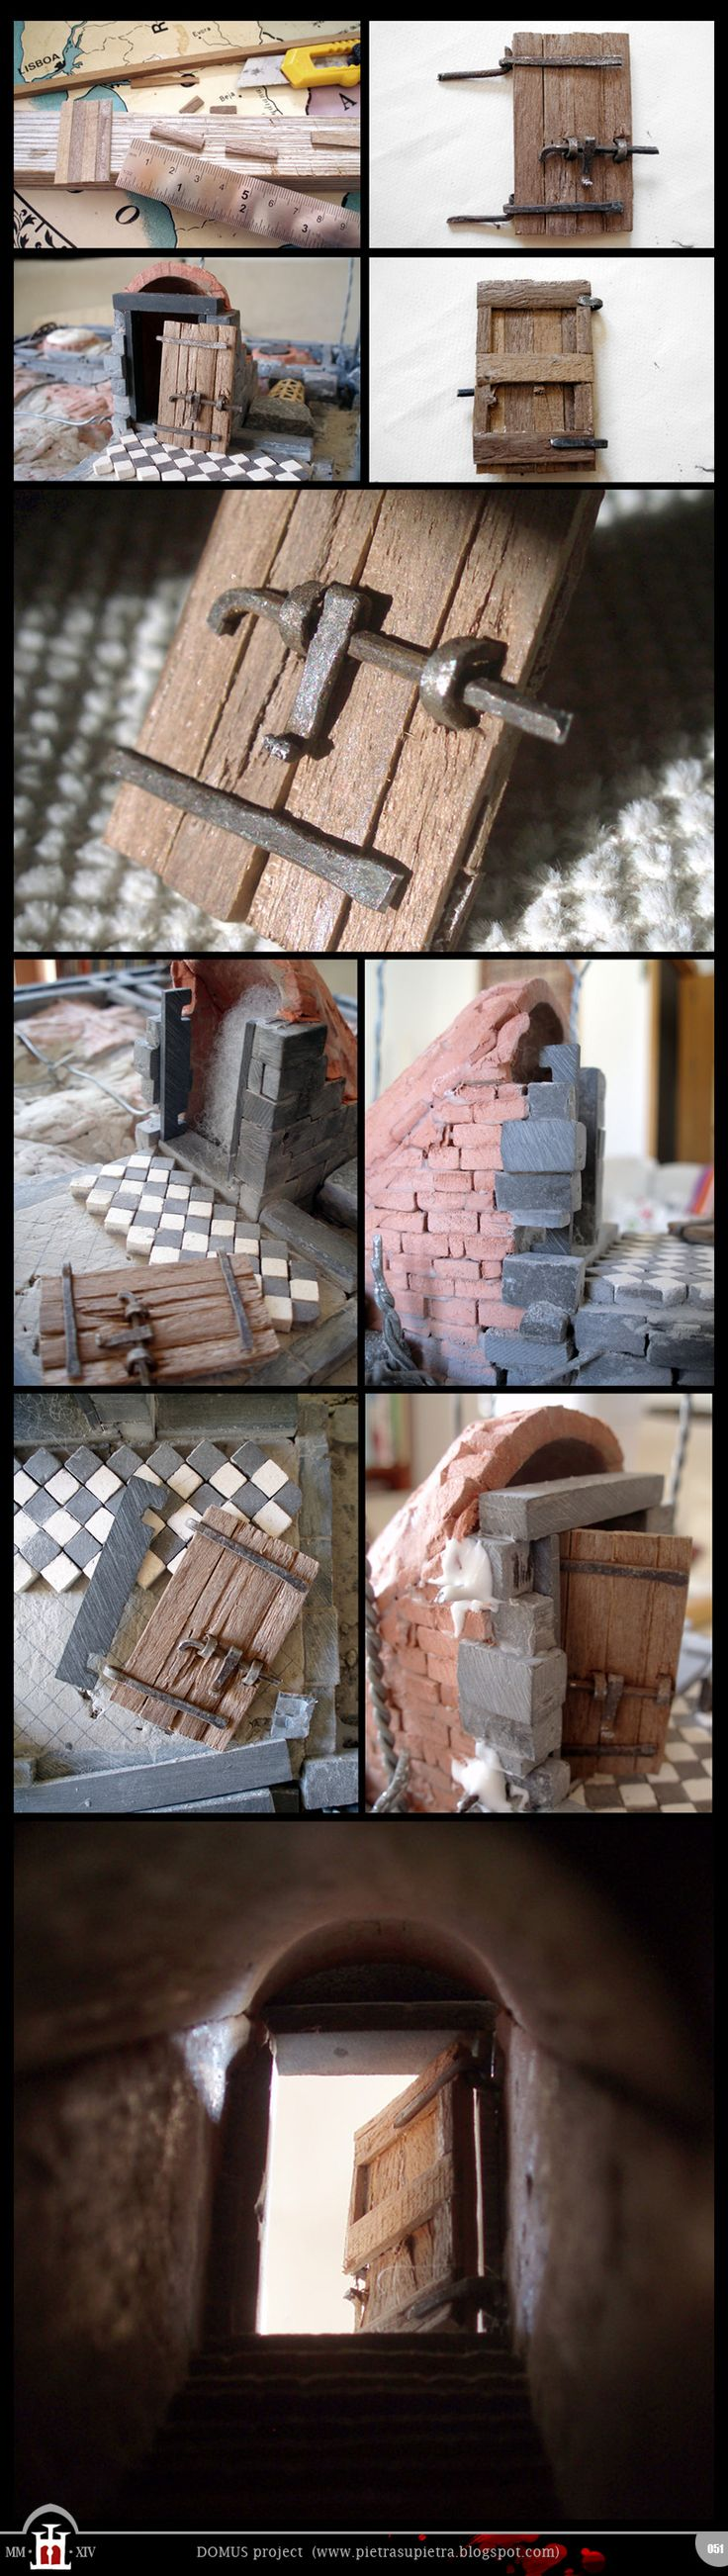 Domus project 51: Cellar door   -  http://pietrasupietra.blogspot.com/2015/02/construction-51-cellar-door.html  -  The Domus project is the construction in scale 1:50 of an imaginary medieval palace. It's made of clay, stones, slate, wood and other construction materials in the style of rich genoese buildings from the middle of XIV century.